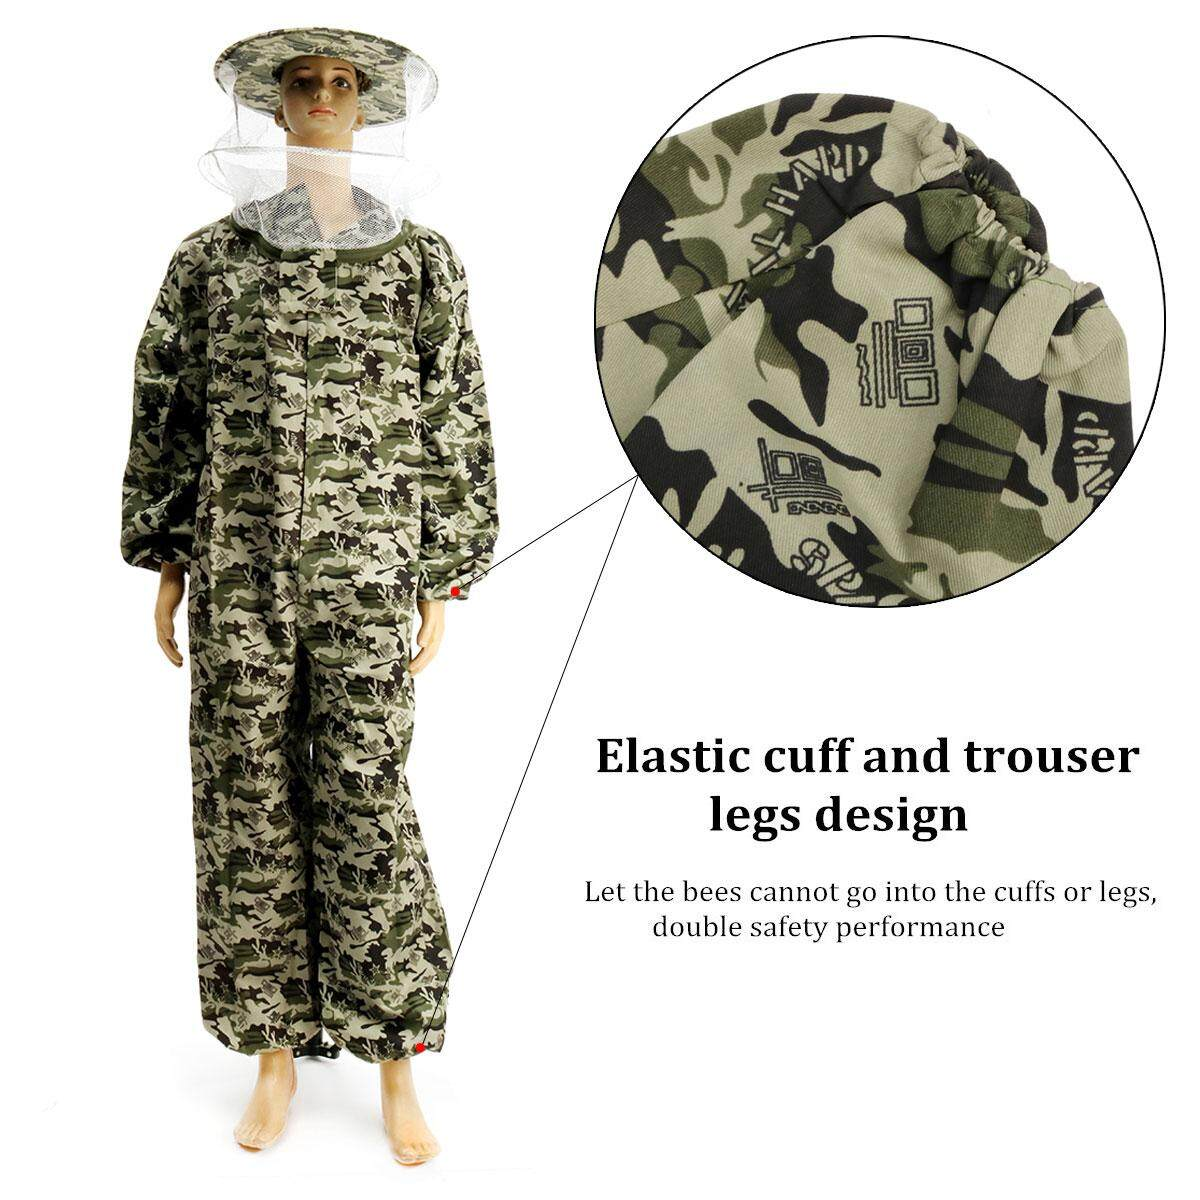 【Free Shipping + Flash Deal】Beekeeping Protective Equipment Veil Bee Keeping Suit Hat Smock Full Body Camo